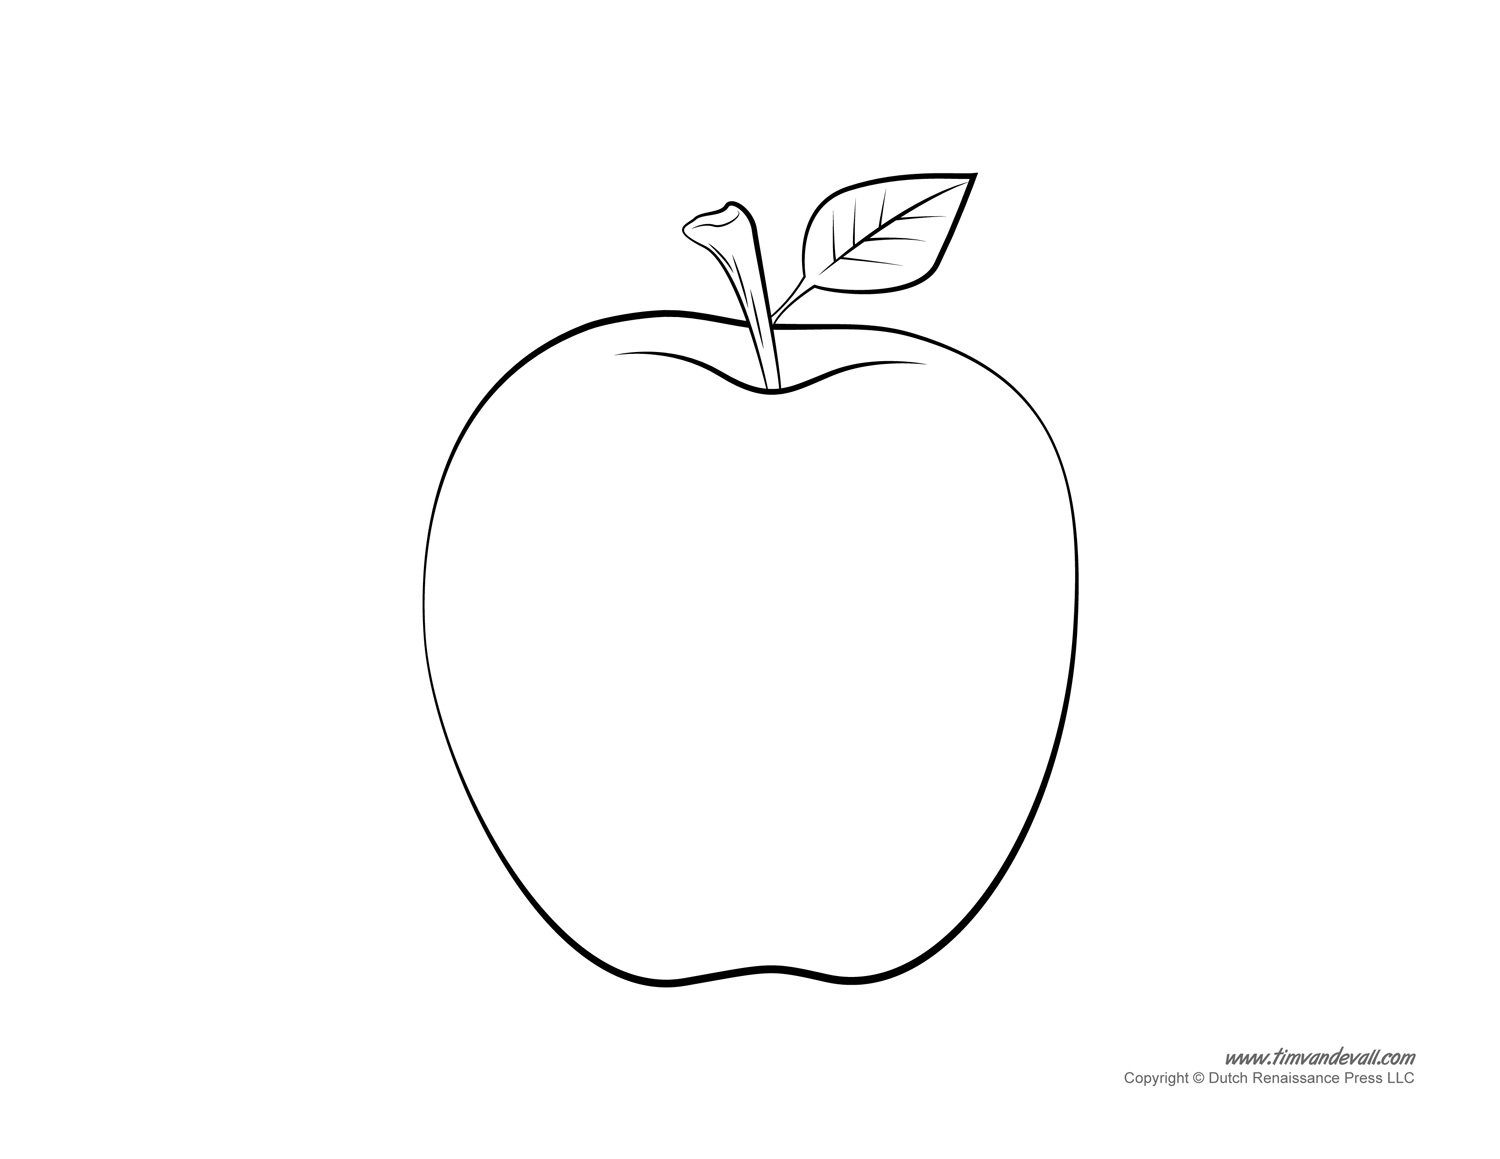 Printable Apple Templates To Make Apple Crafts For Preschool